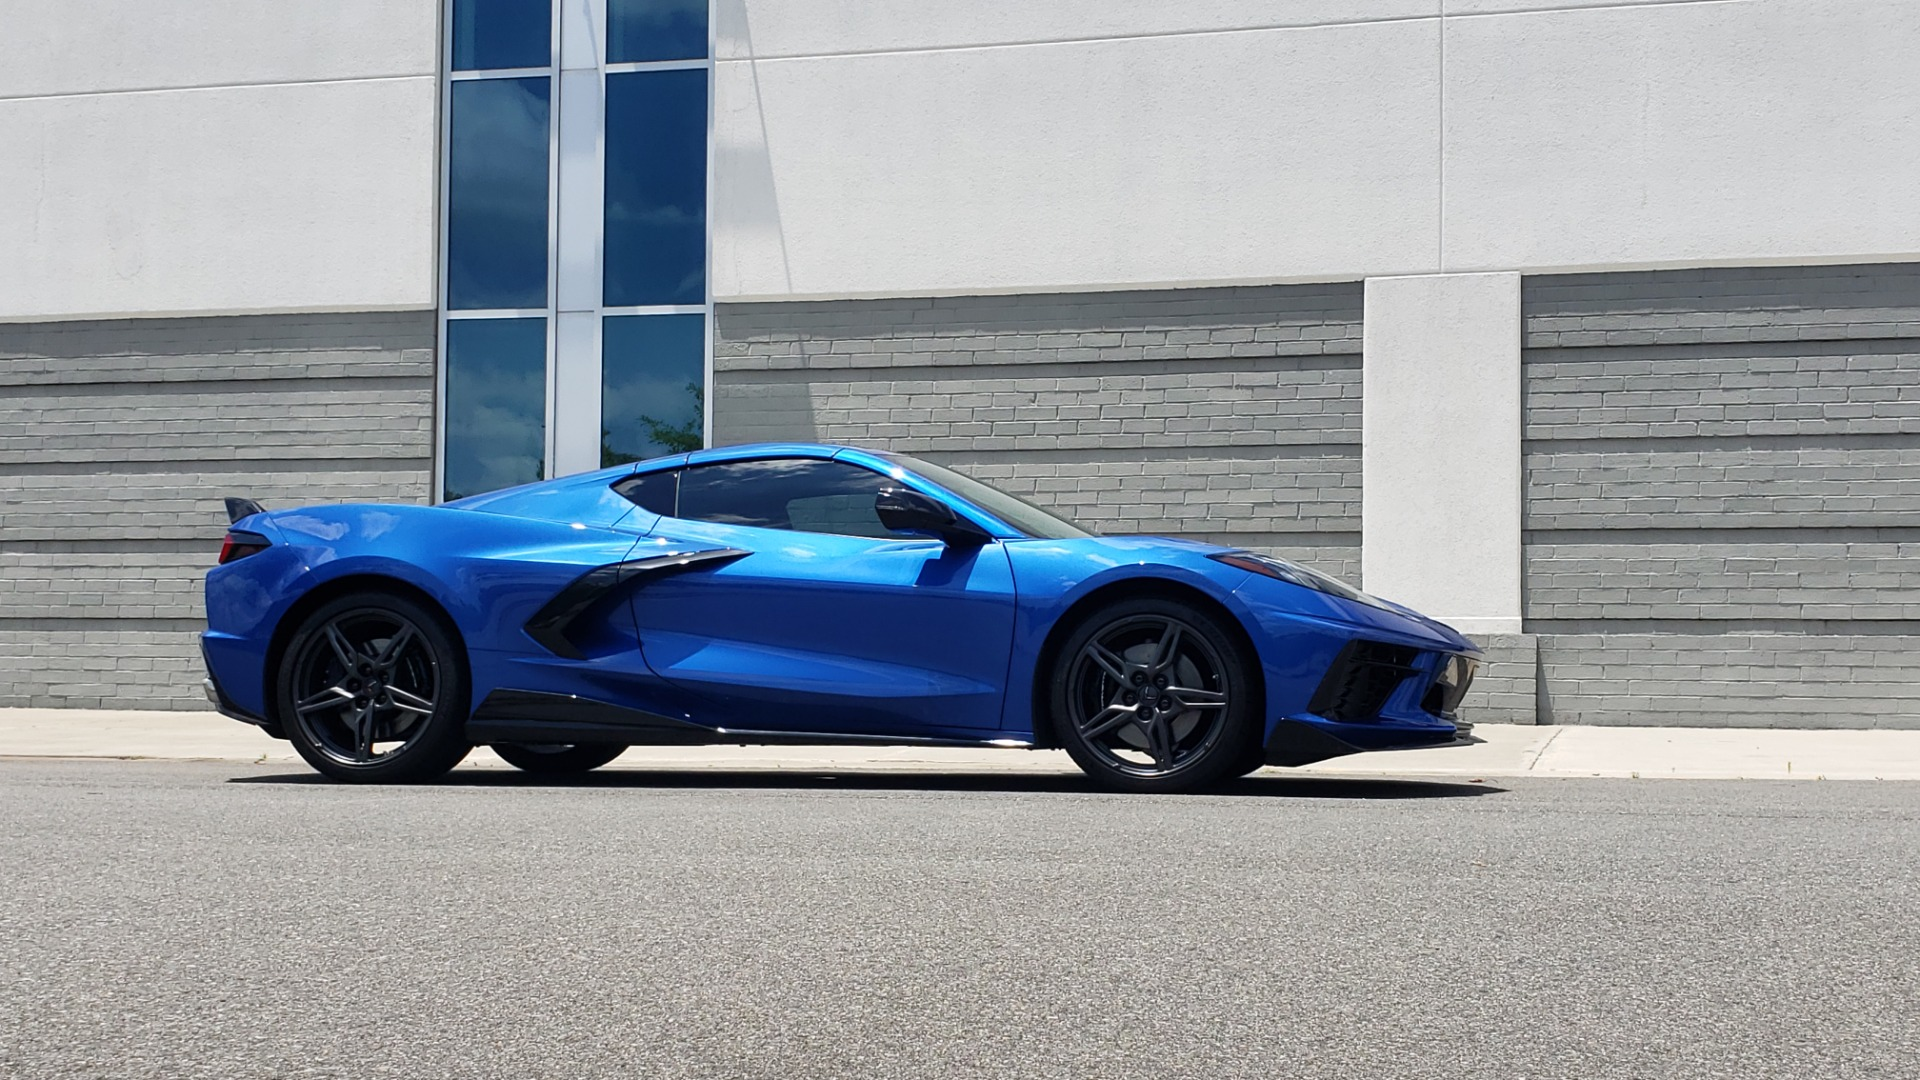 Used 2020 Chevrolet CORVETTE C8 STINGRAY COUPE 2LT / PERF & Z51 PKG / NAV / BOSE / 8-SPD AUTO / REARVIEW for sale Sold at Formula Imports in Charlotte NC 28227 8